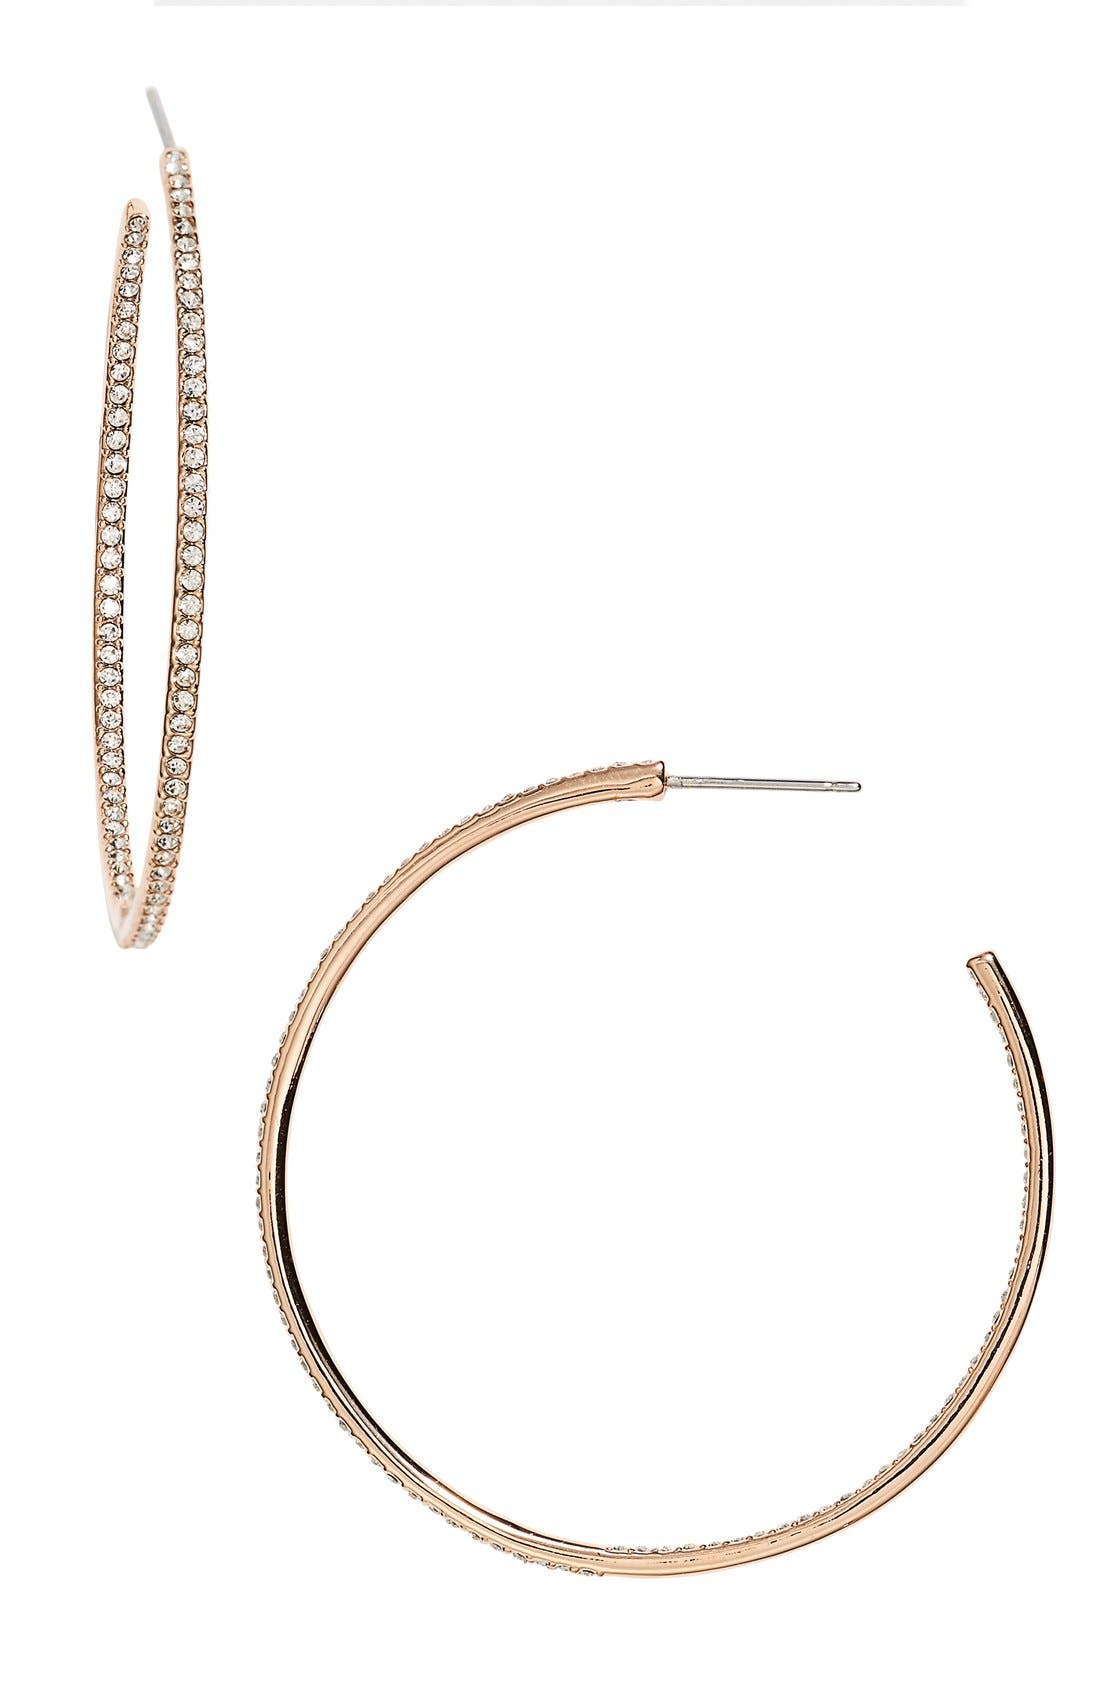 Medium Inside Out Hoop Earrings,                             Main thumbnail 1, color,                             ROSE GOLD